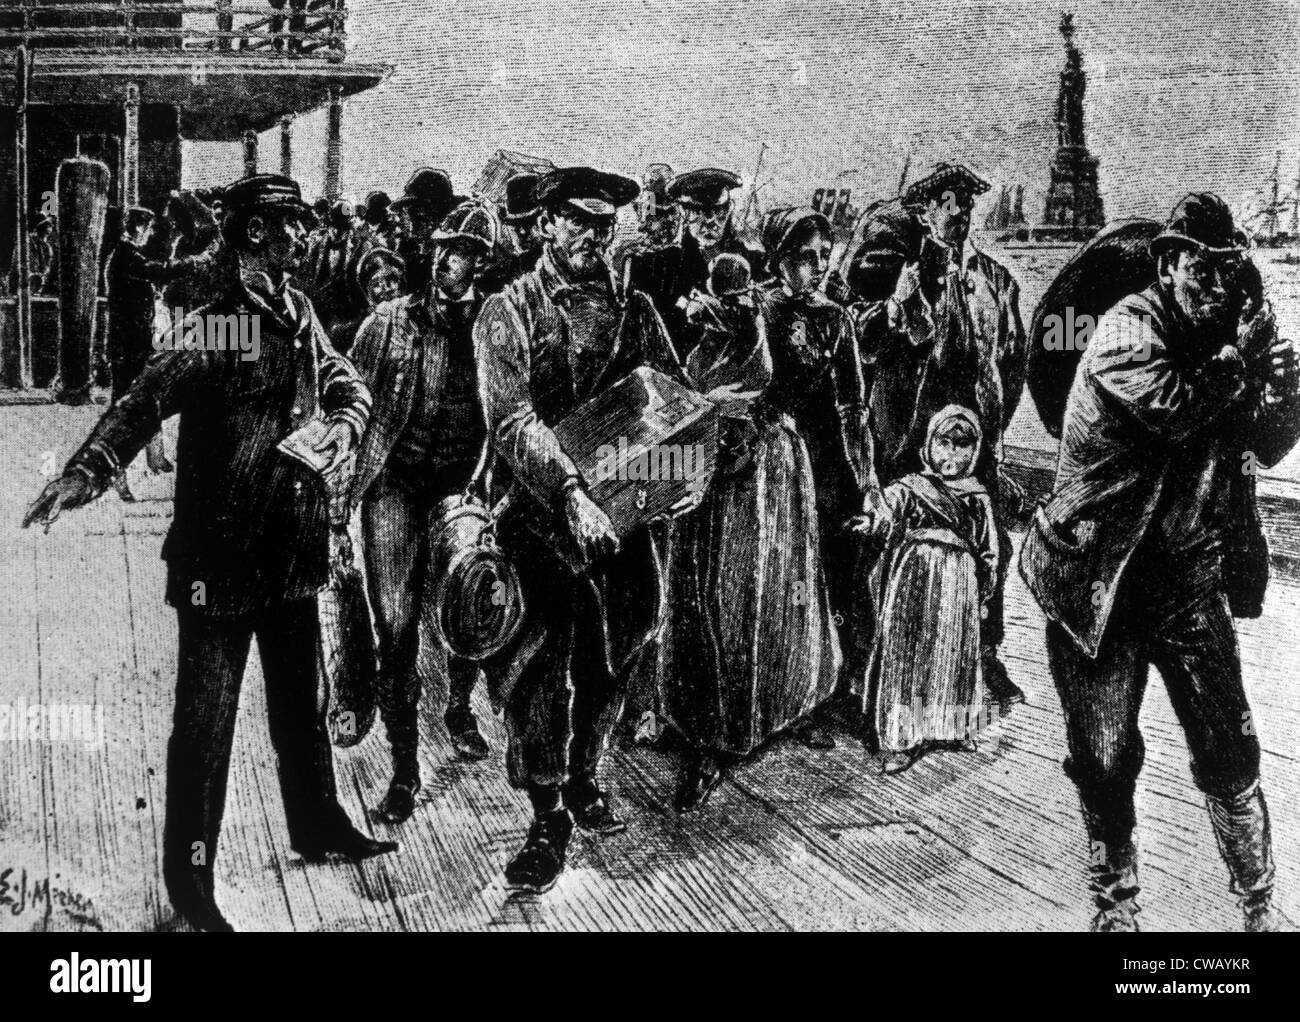 Immigrants Arriving In New York City In The Late 19th